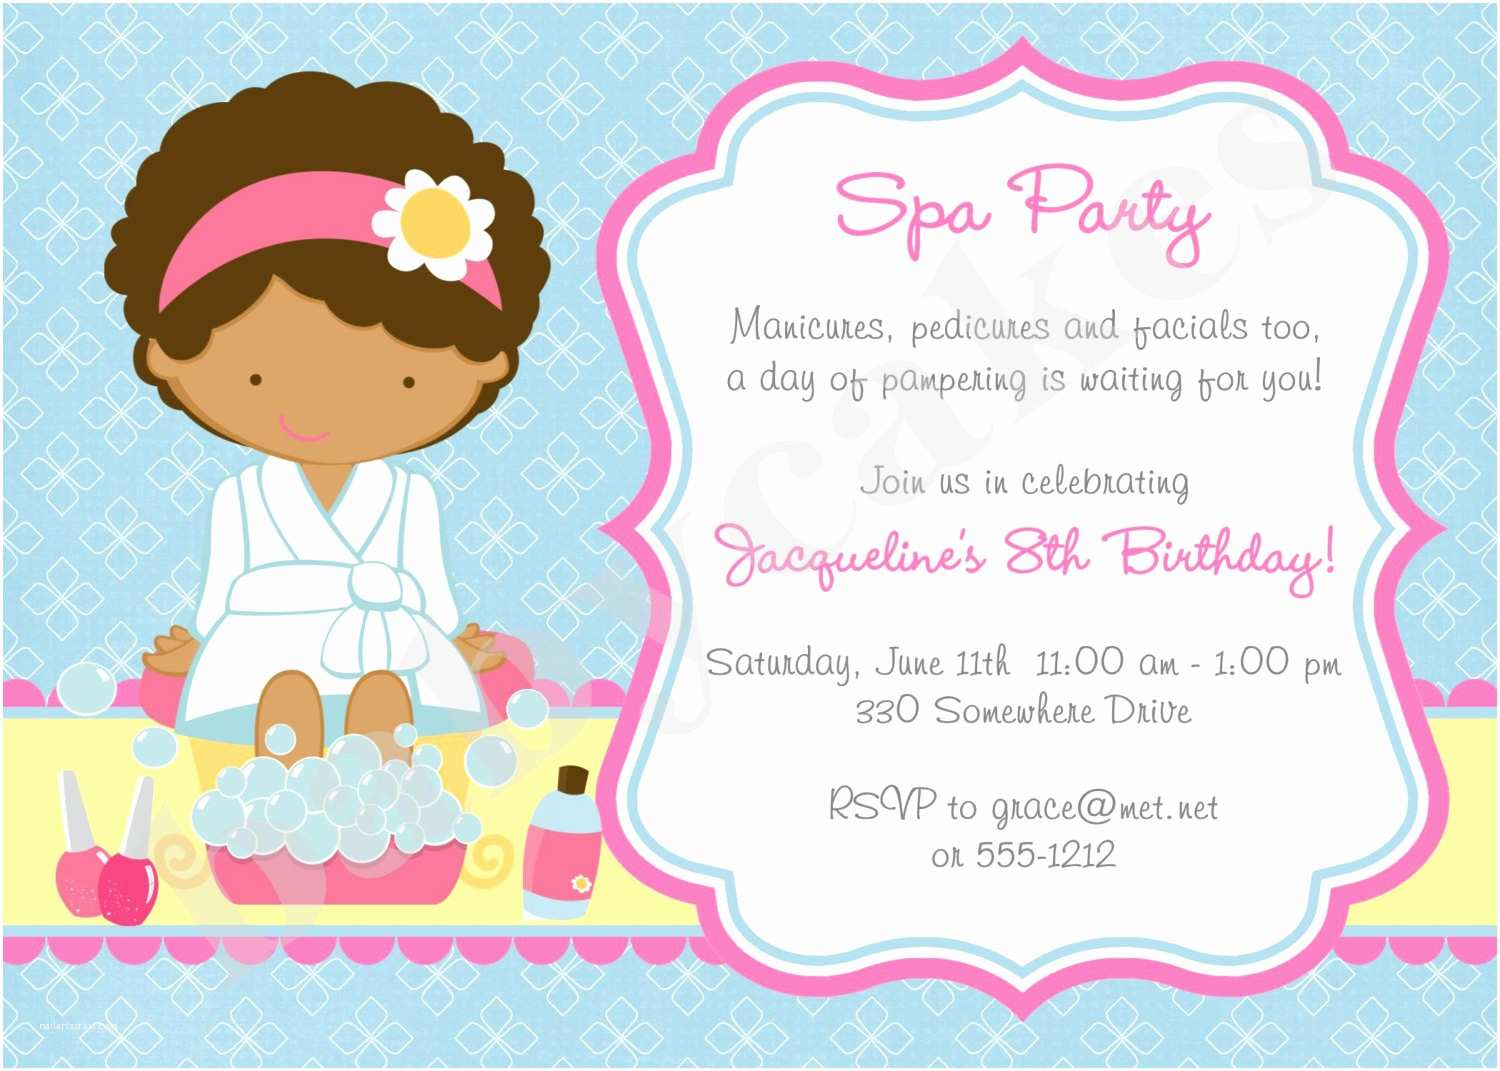 Pamper Party Invitations Spa Party Invitation Spa Birthday Party Invitation Invite Spa